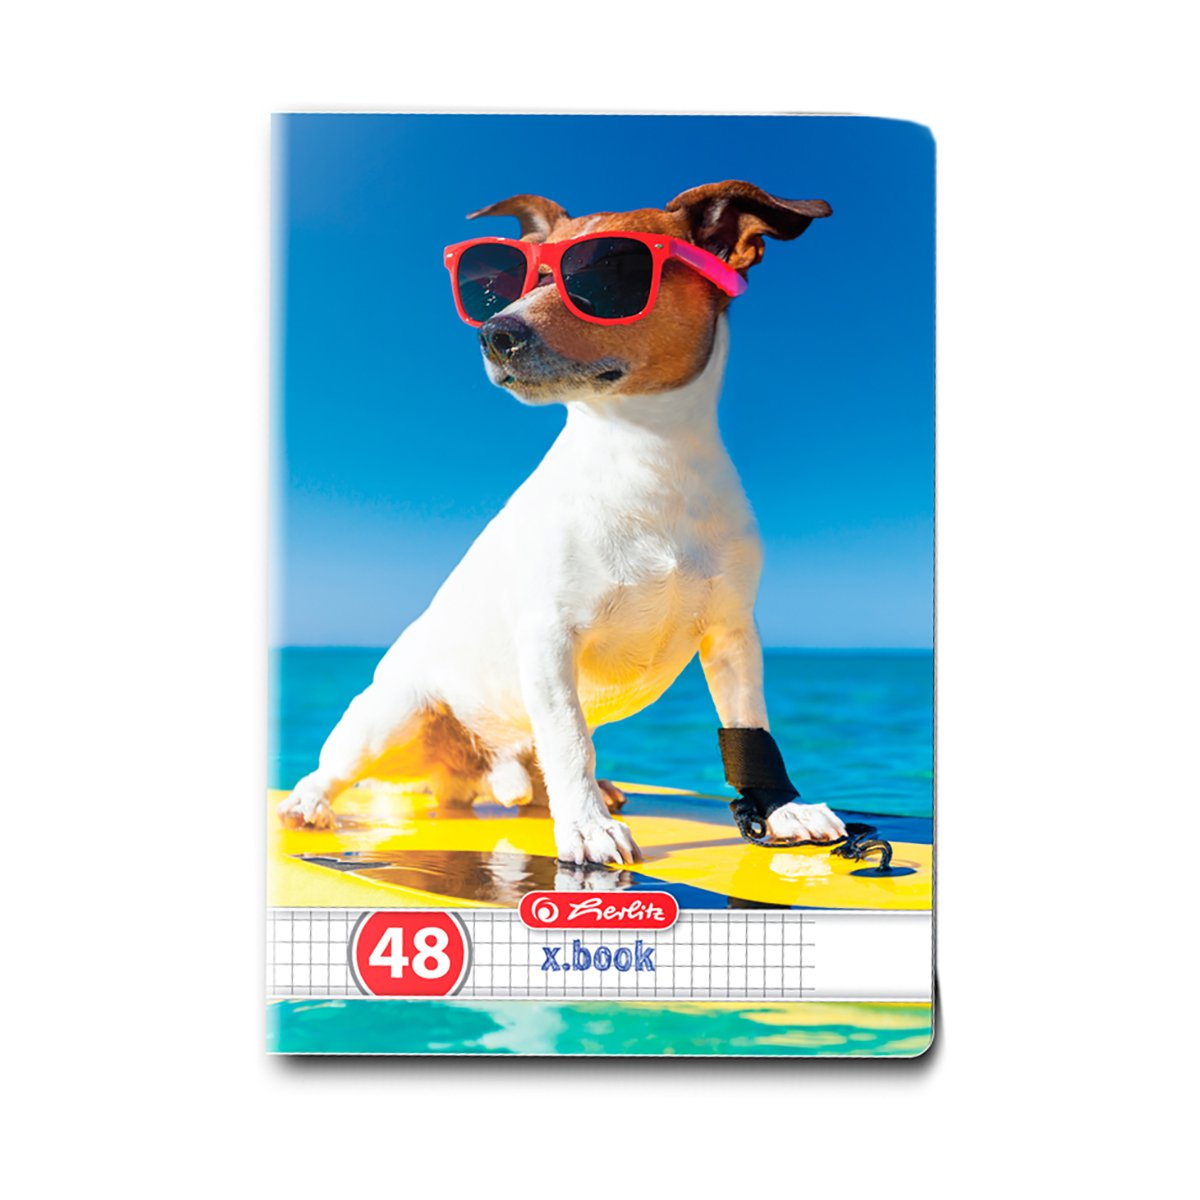 Caiet matematica Herlitz, A5, 48 file, Cool Dog